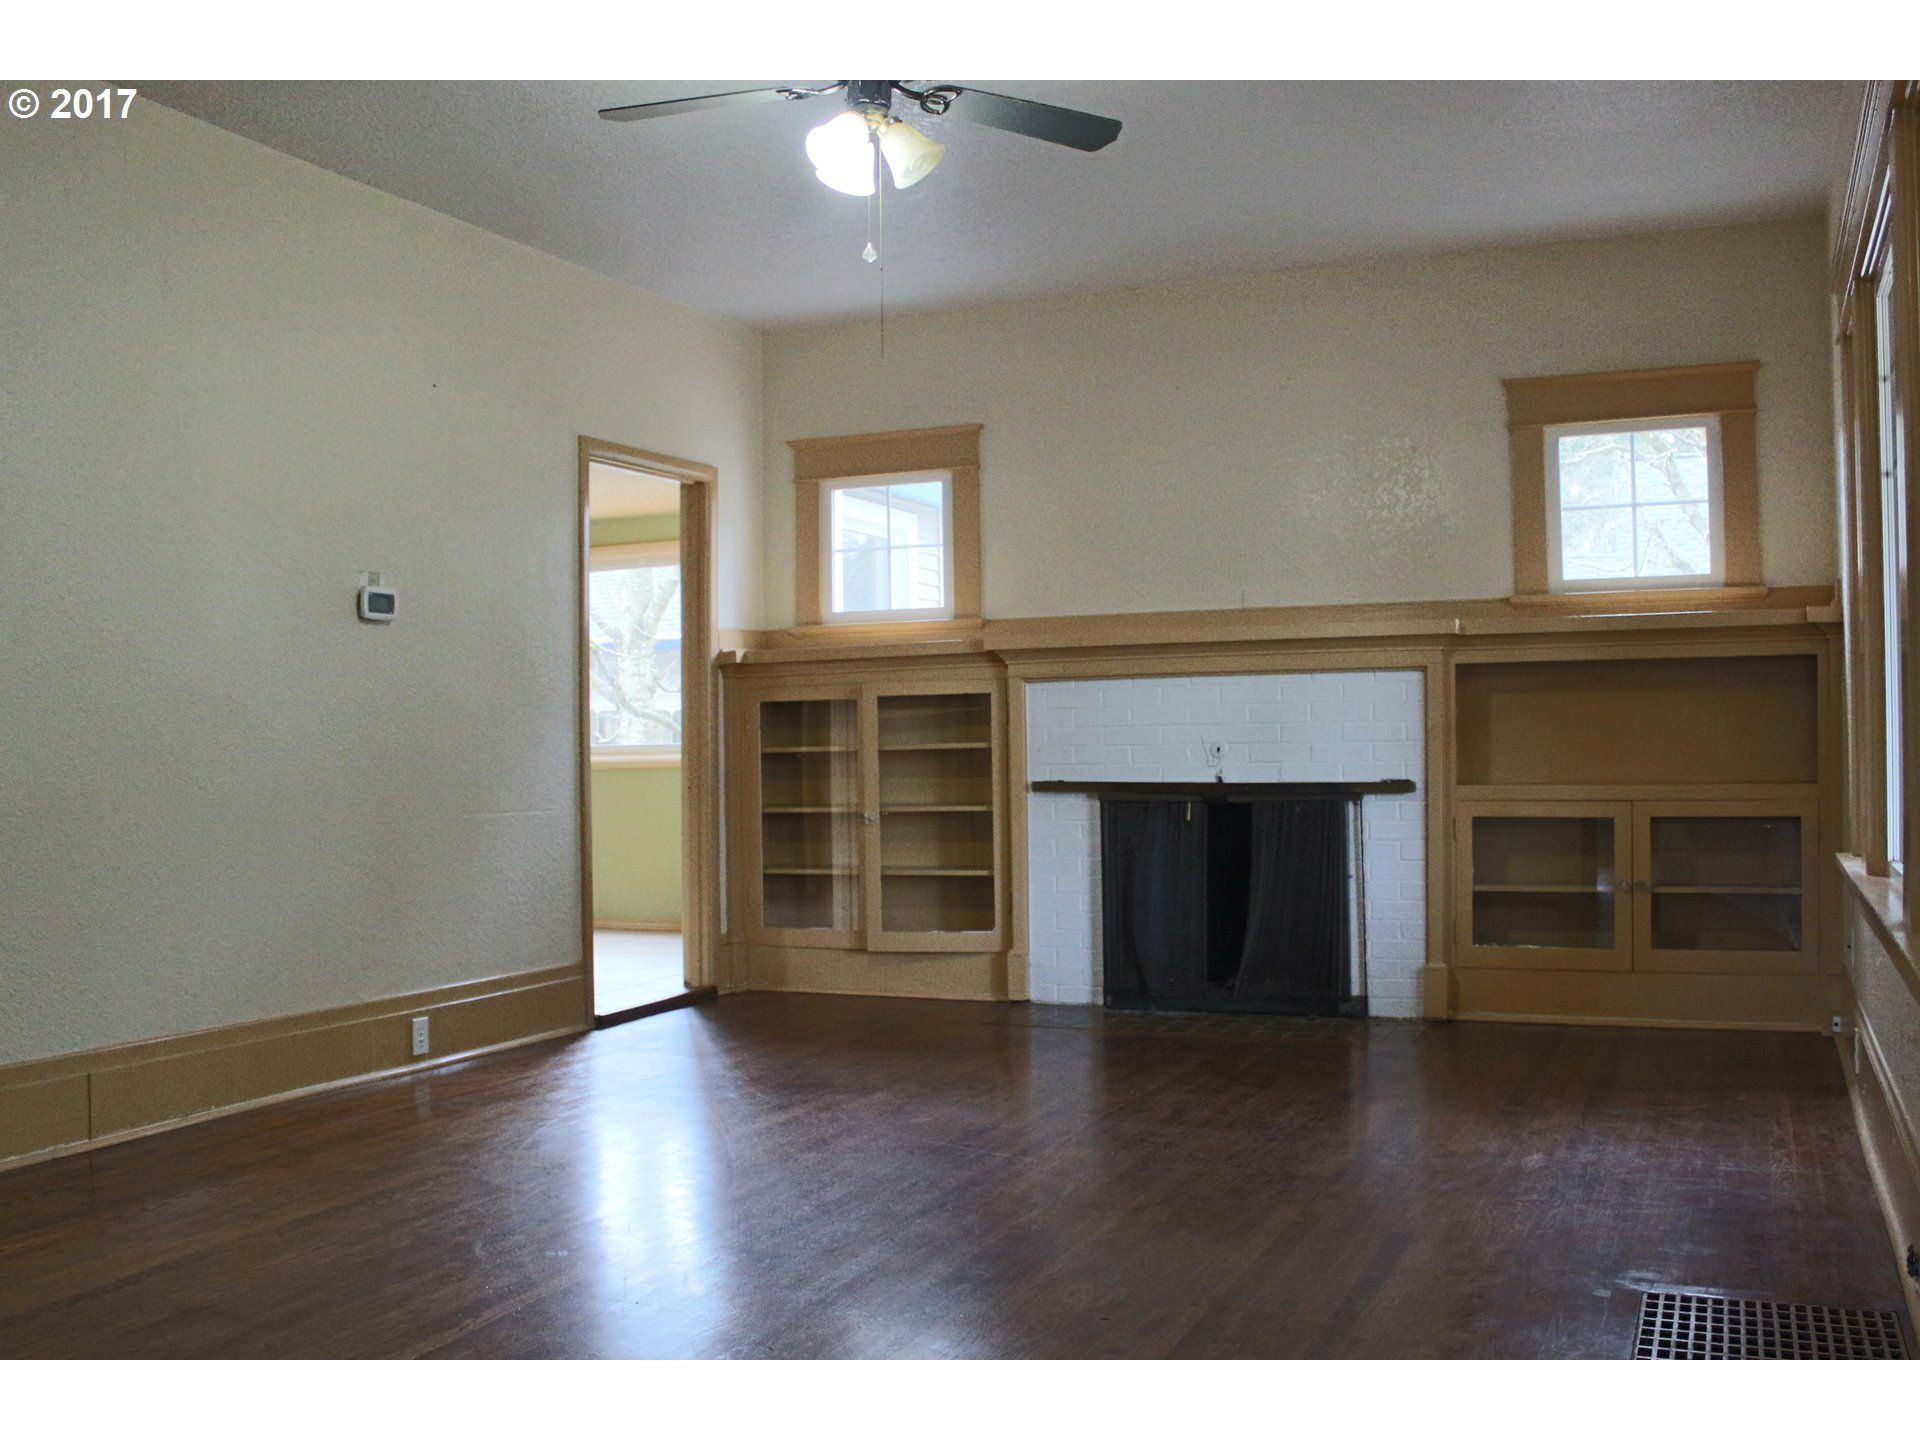 1372 sq. ft 4 bedrooms 2 bathrooms  House , Portland, OR